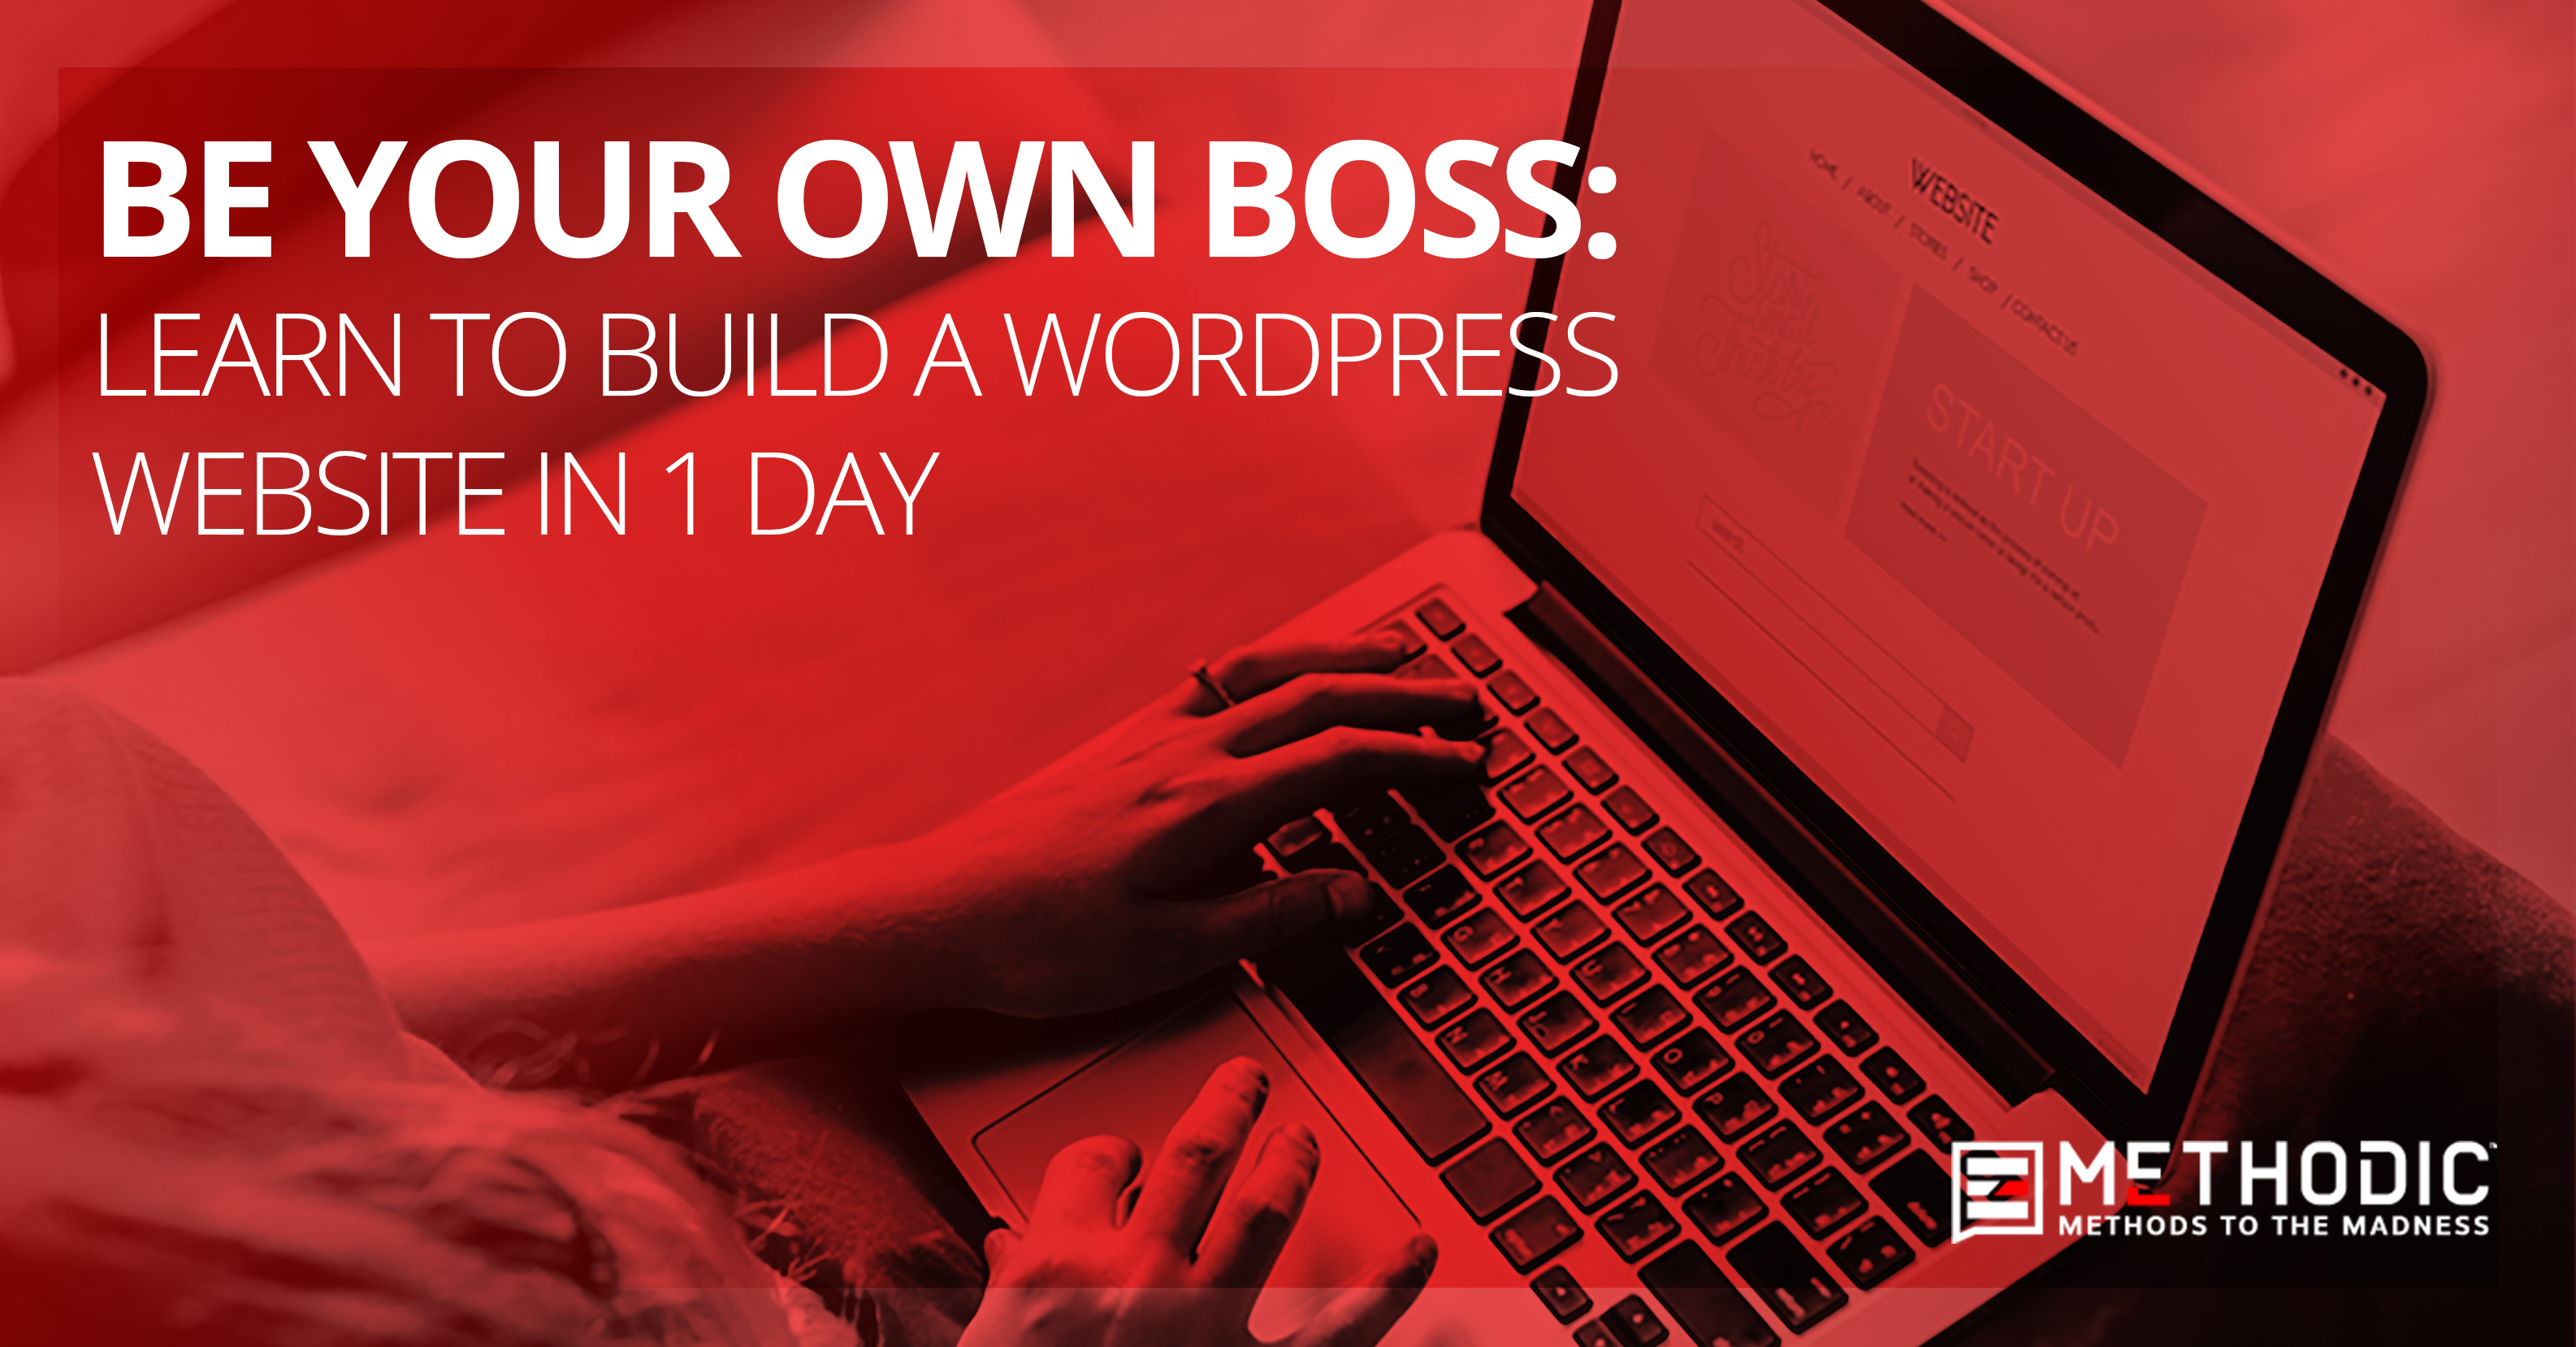 Be Your Own Boss: Learn to Build a WordPress Website in 1 Day